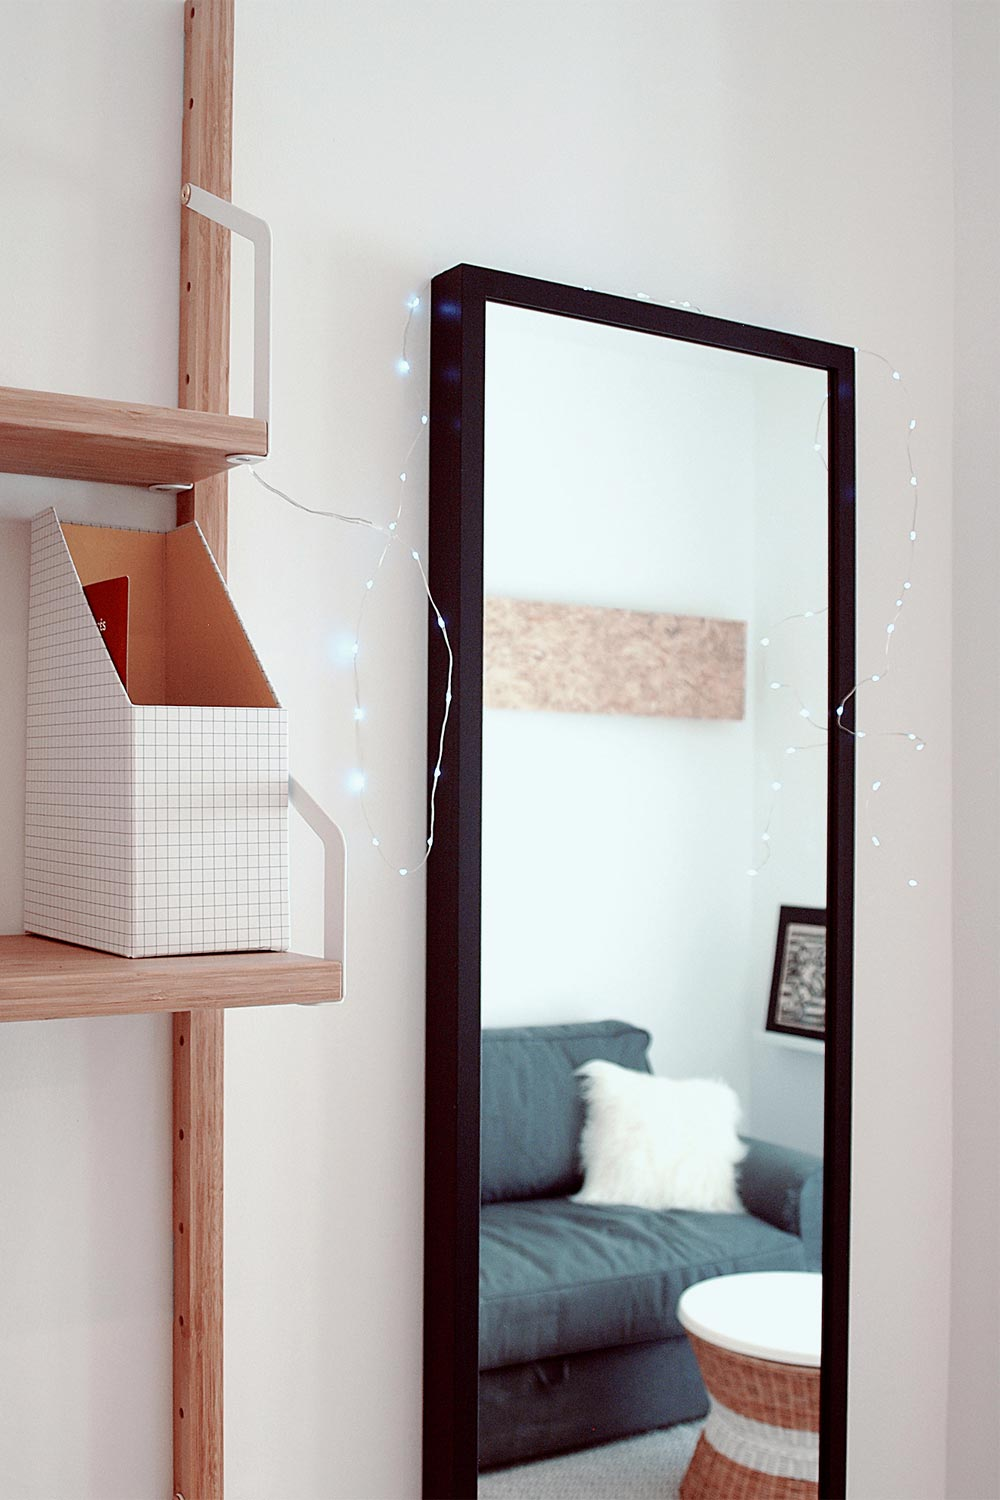 Interior detail of an IKEA mirror and shelves